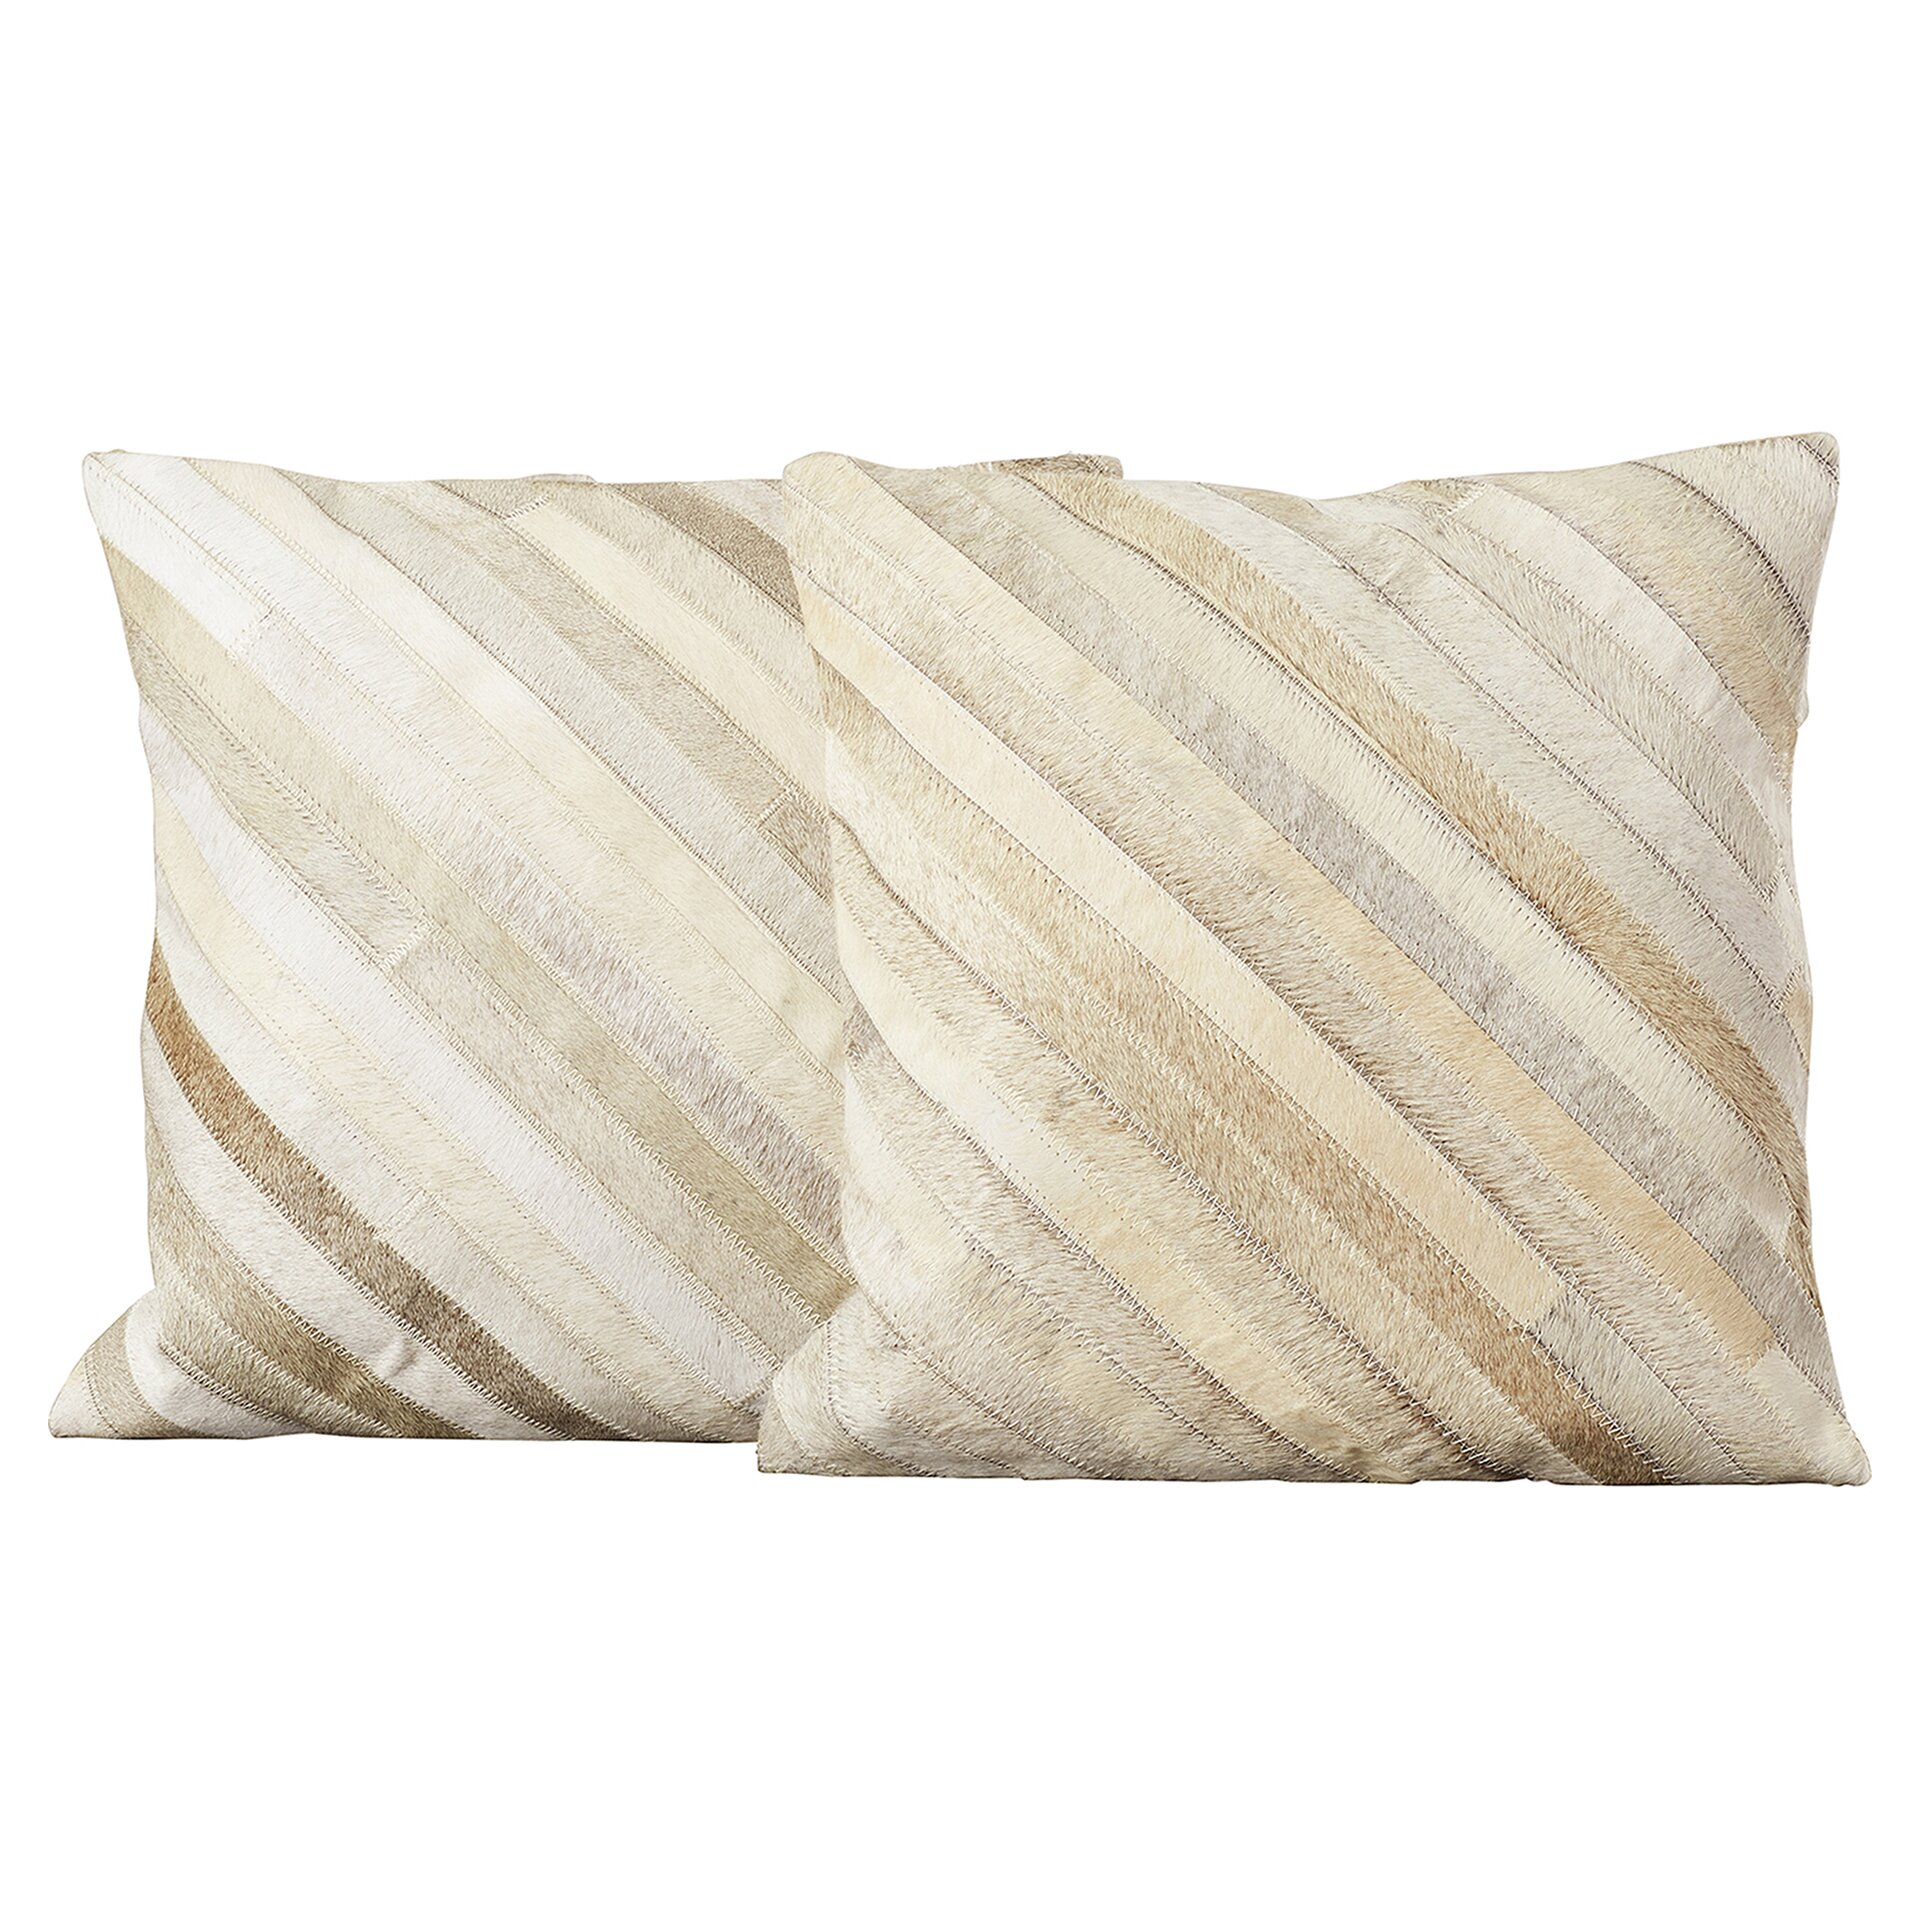 Old fashioned heavy feather pillows 8